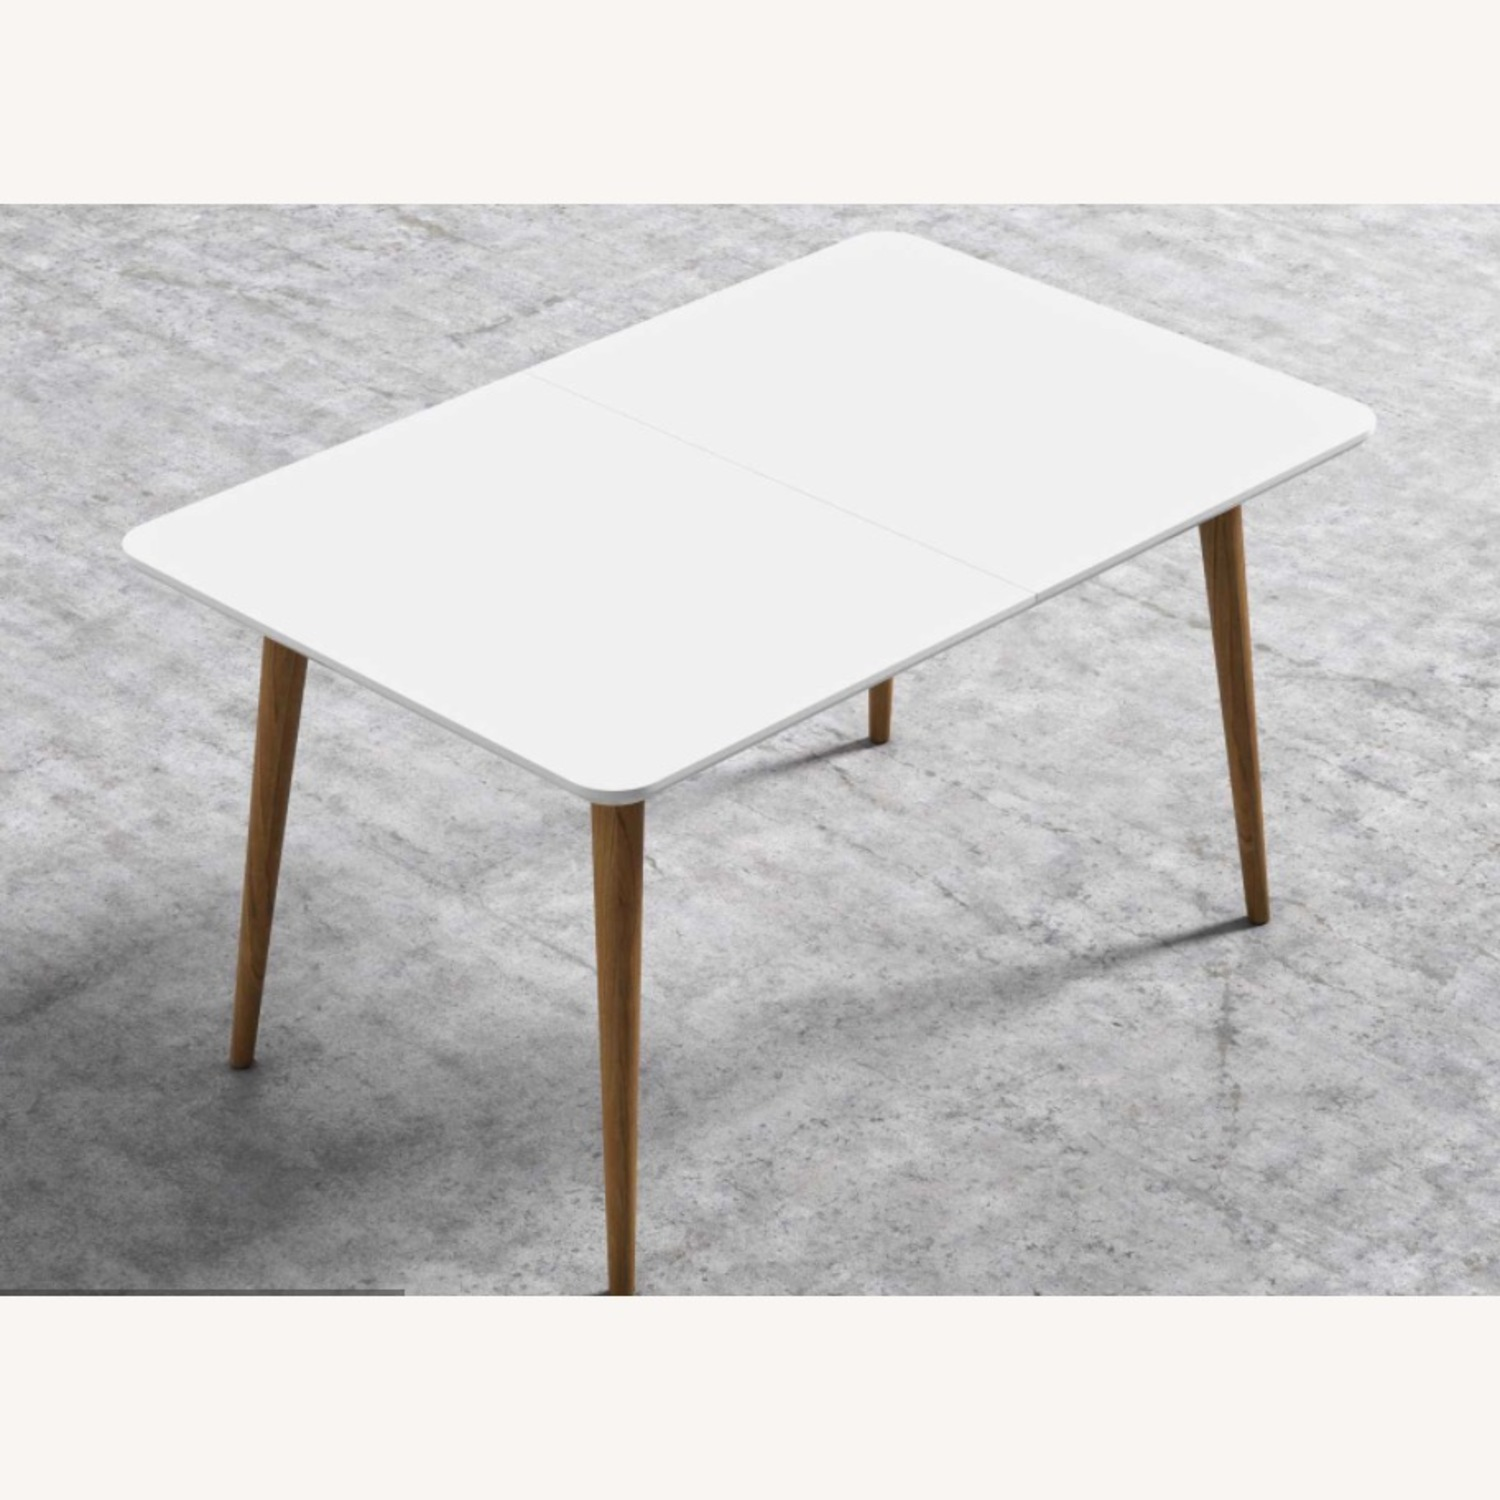 Rove Concepts White with Wood Dining Table - image-2